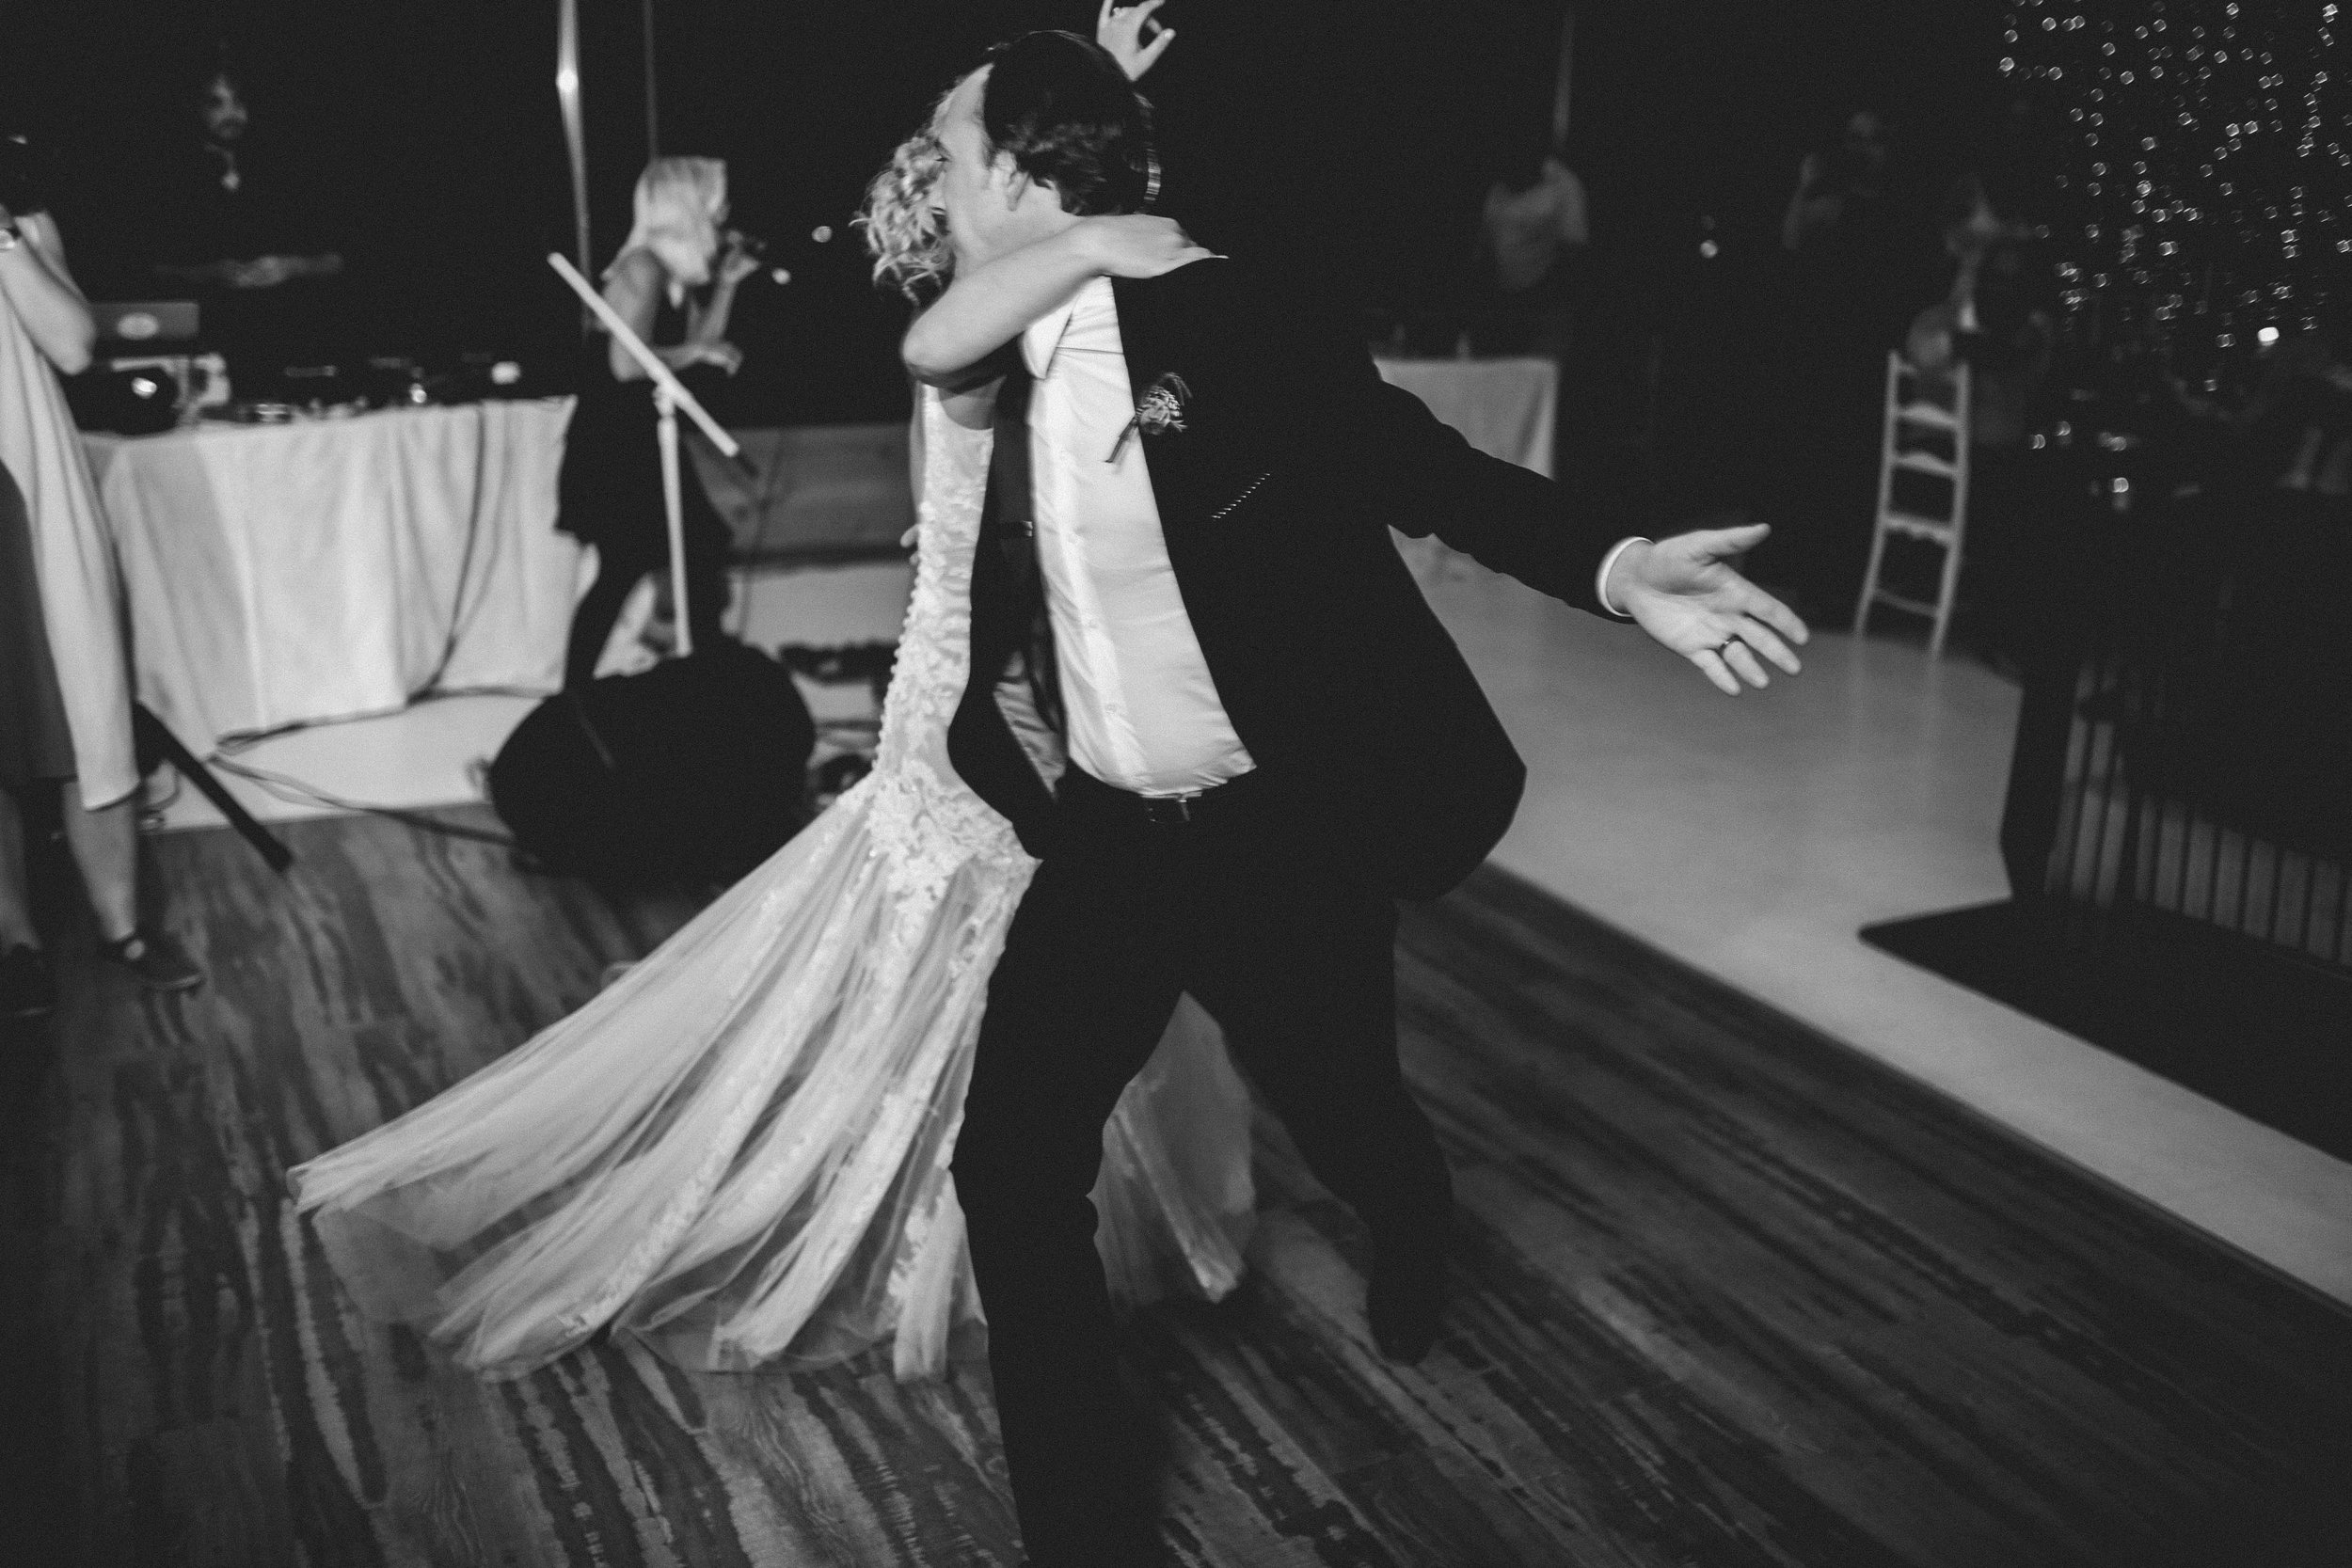 cape-town-wedding-sound-Tobie-and-lileen-reception-firstdance-myohmy-entertainment.jpg